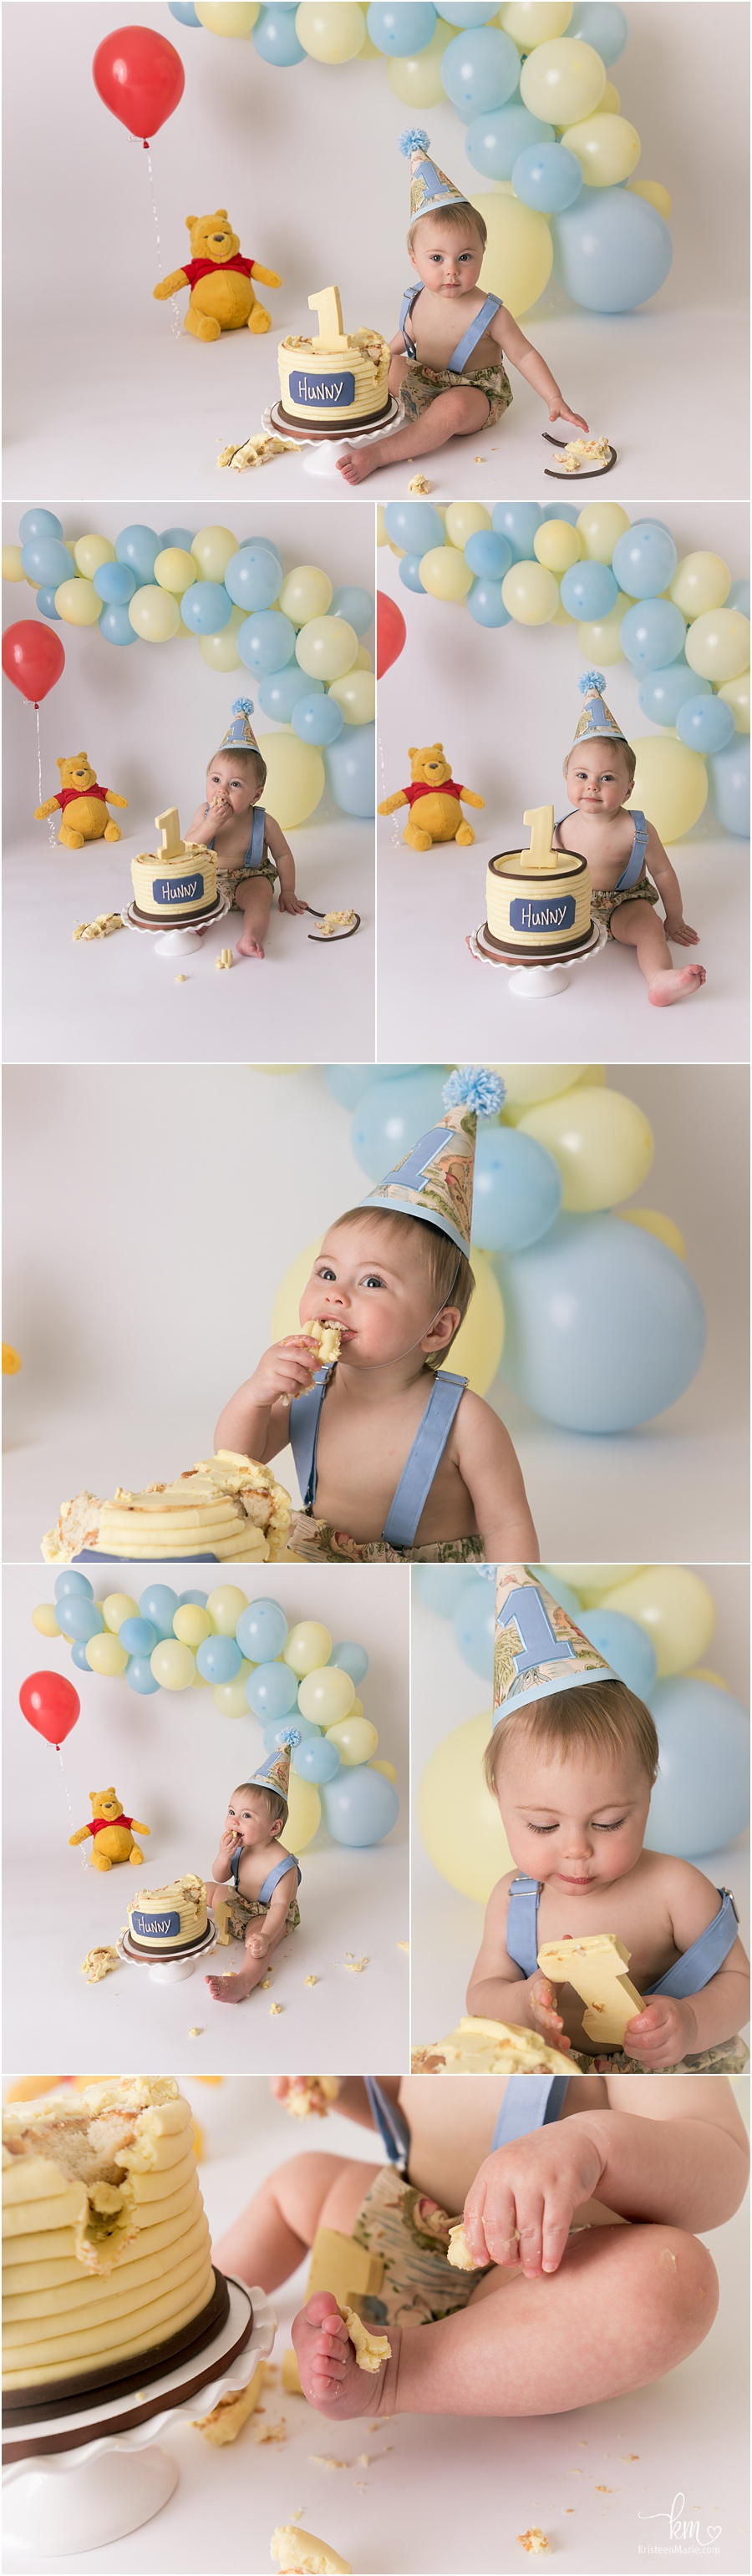 blue and yellow - Winnie the Pooh Cake Smash for 1st birthday